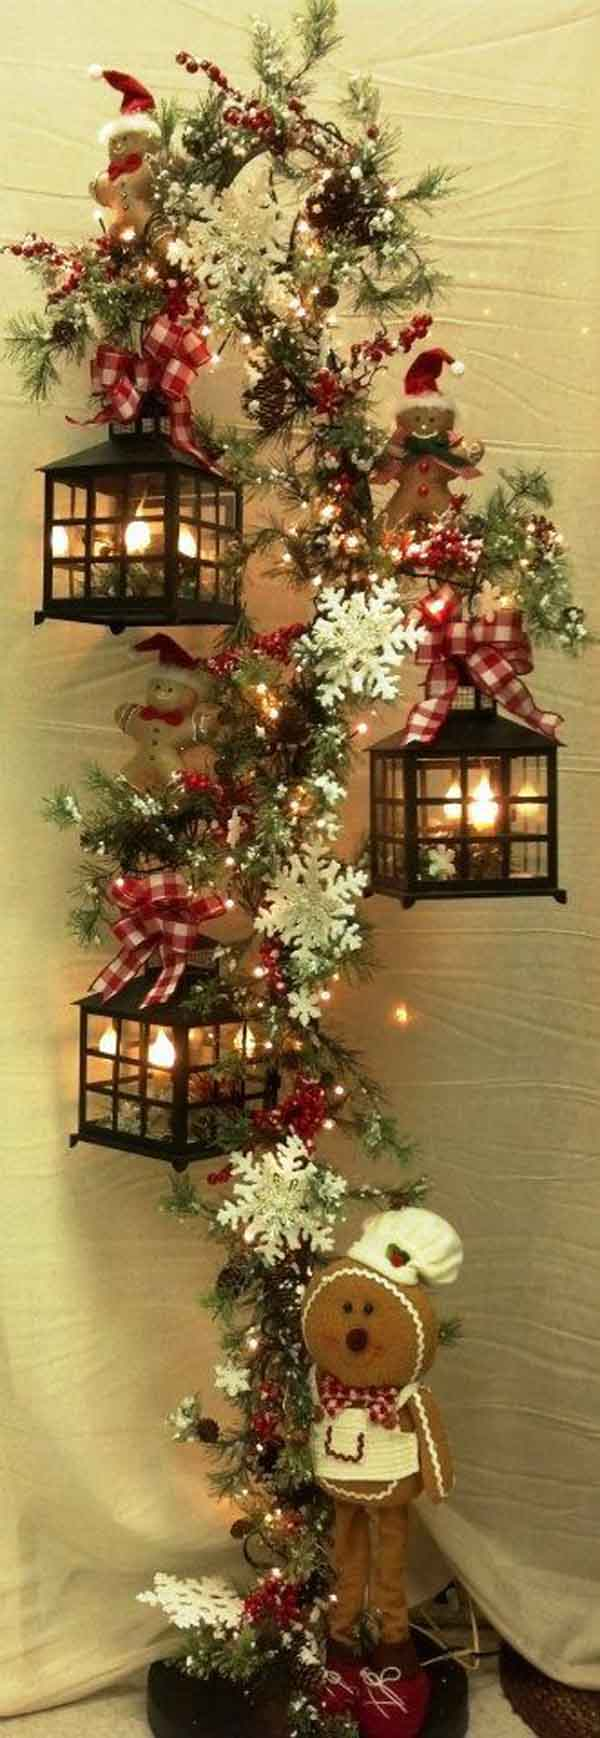 classy christmas lantern - How To Decorate A Lantern For Christmas